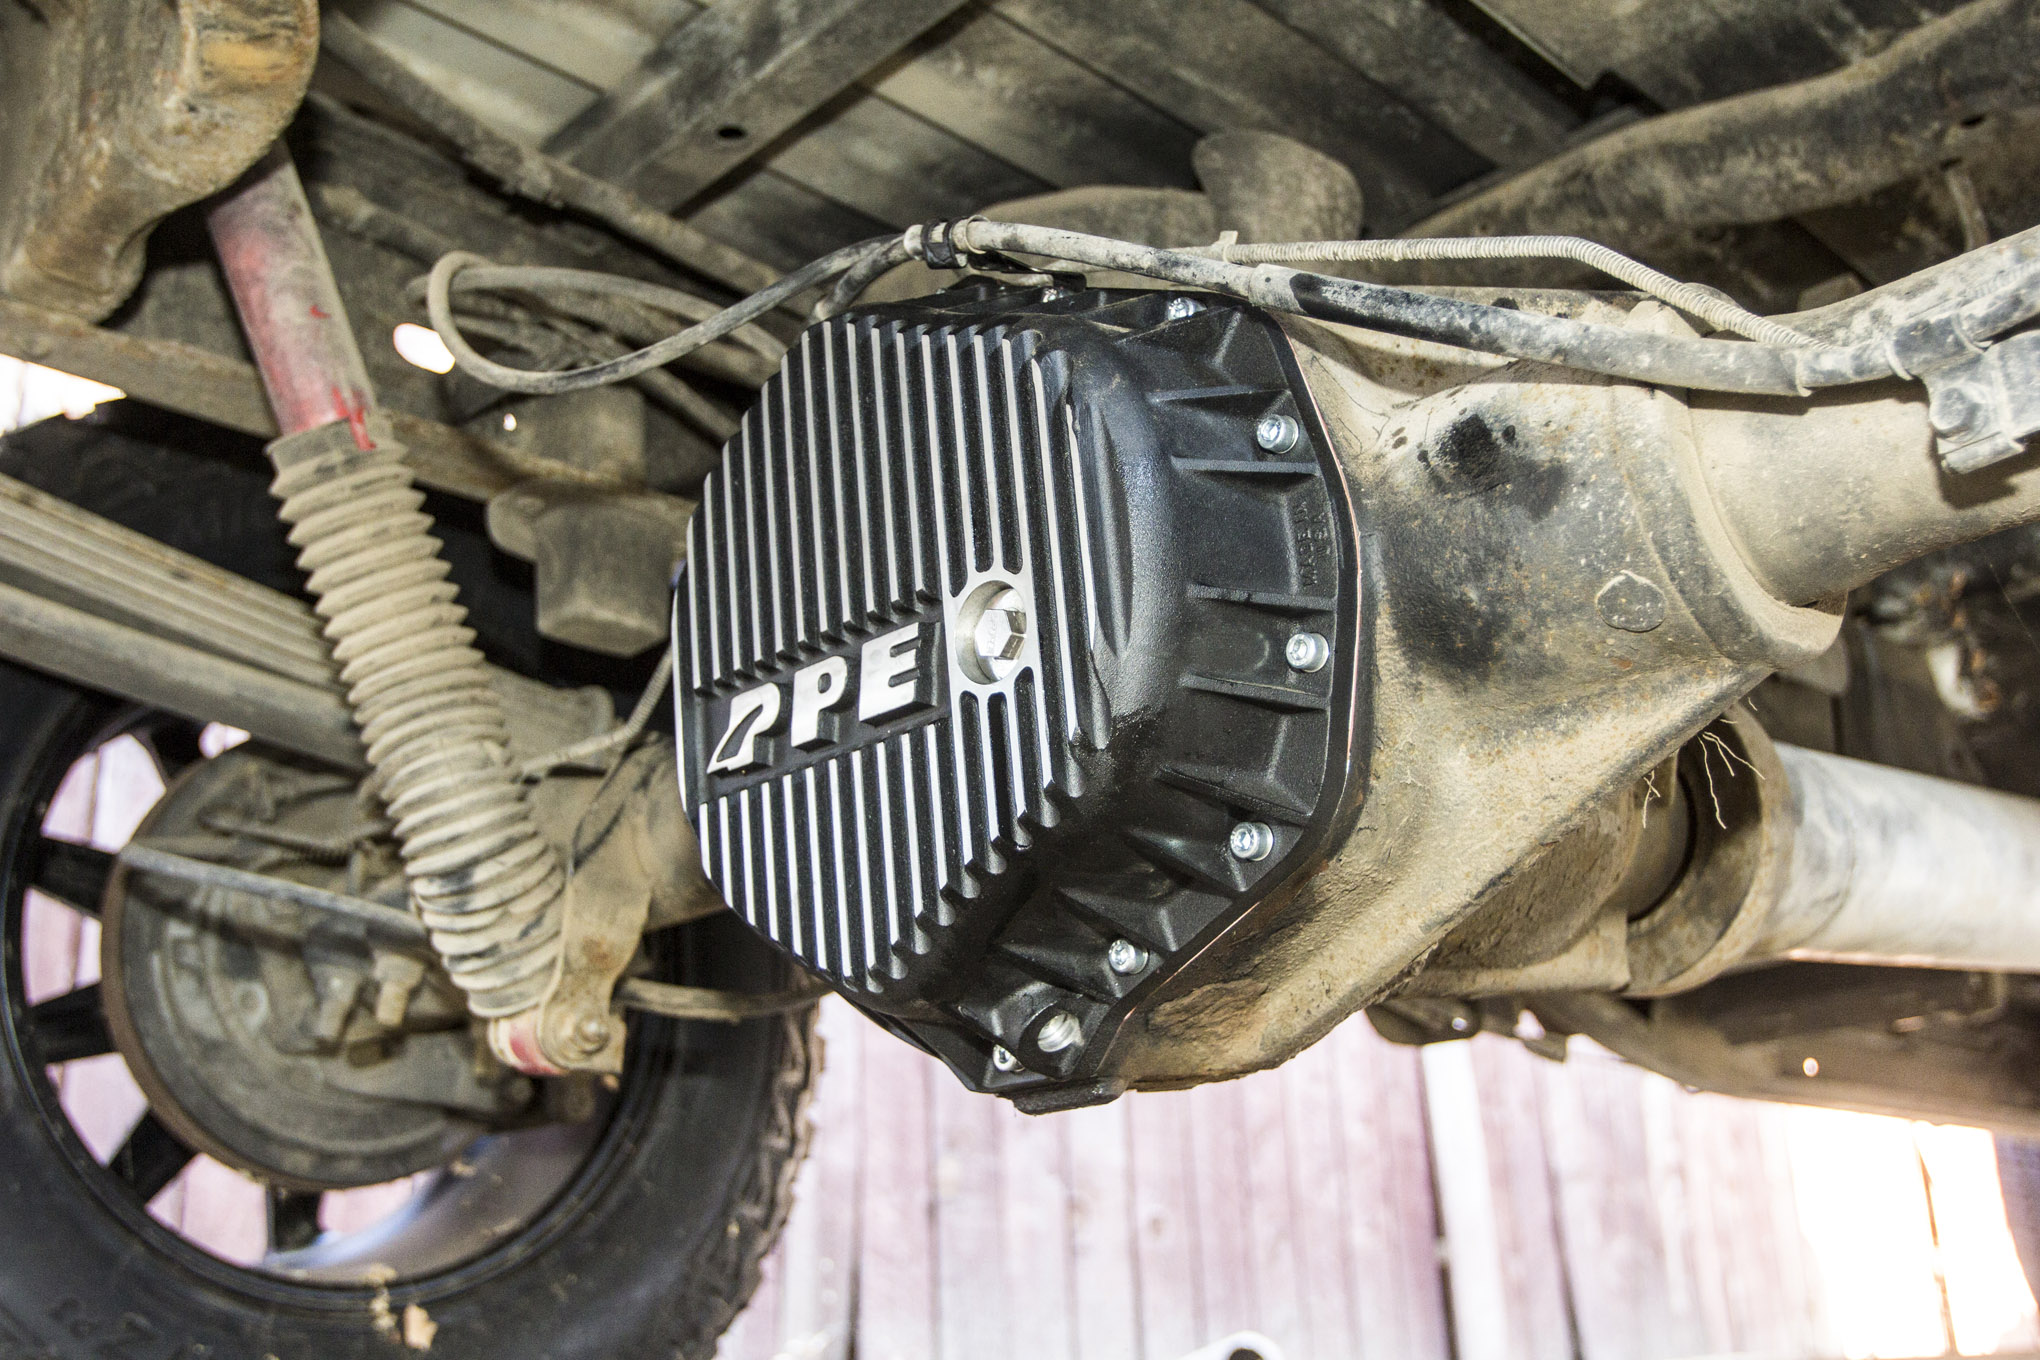 PPE Duramax Oil Pan, Allison Transmission Pan, and 14-Bolt